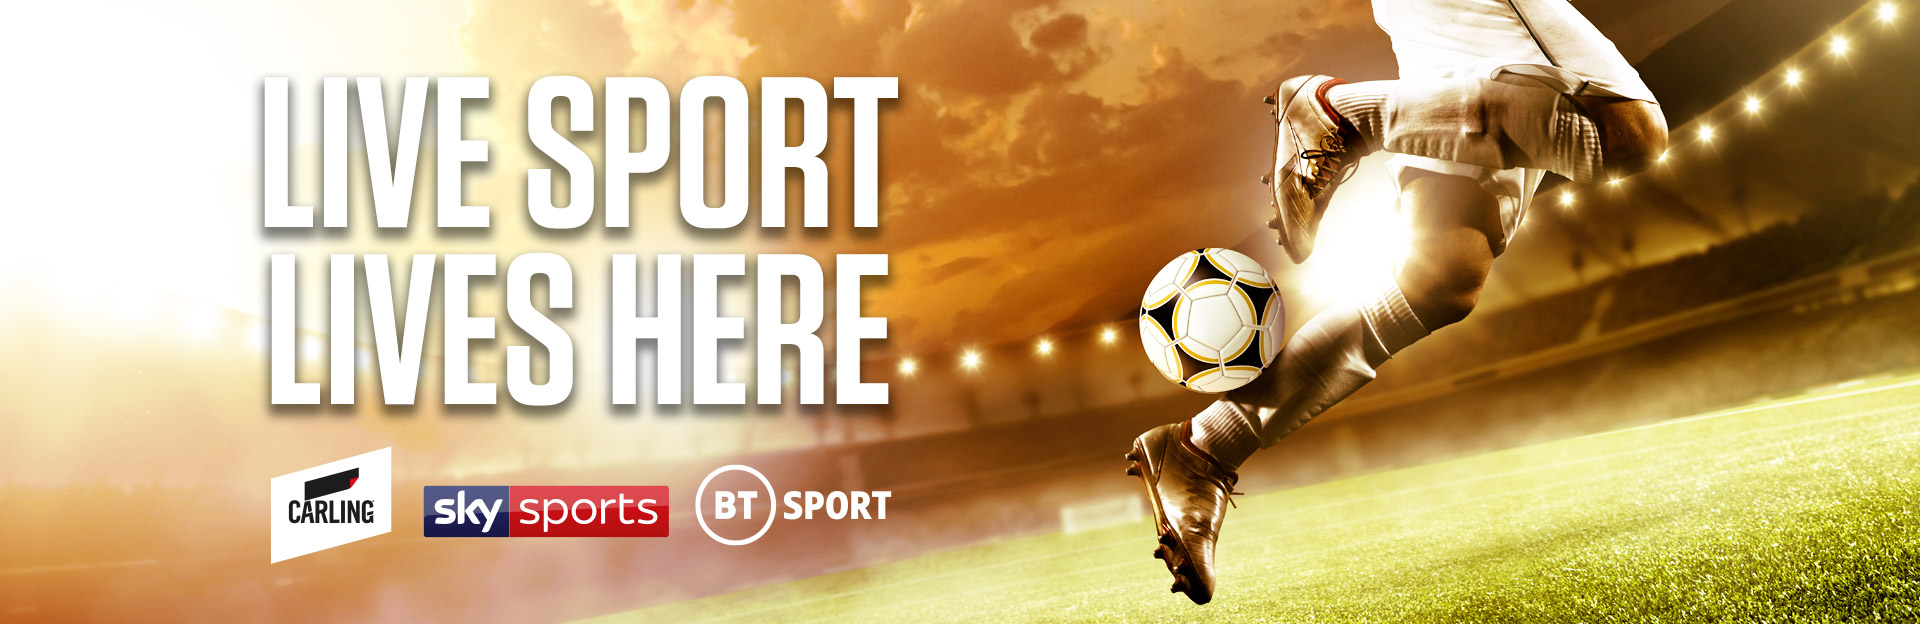 Live Sports at O'Neill's Blackheath